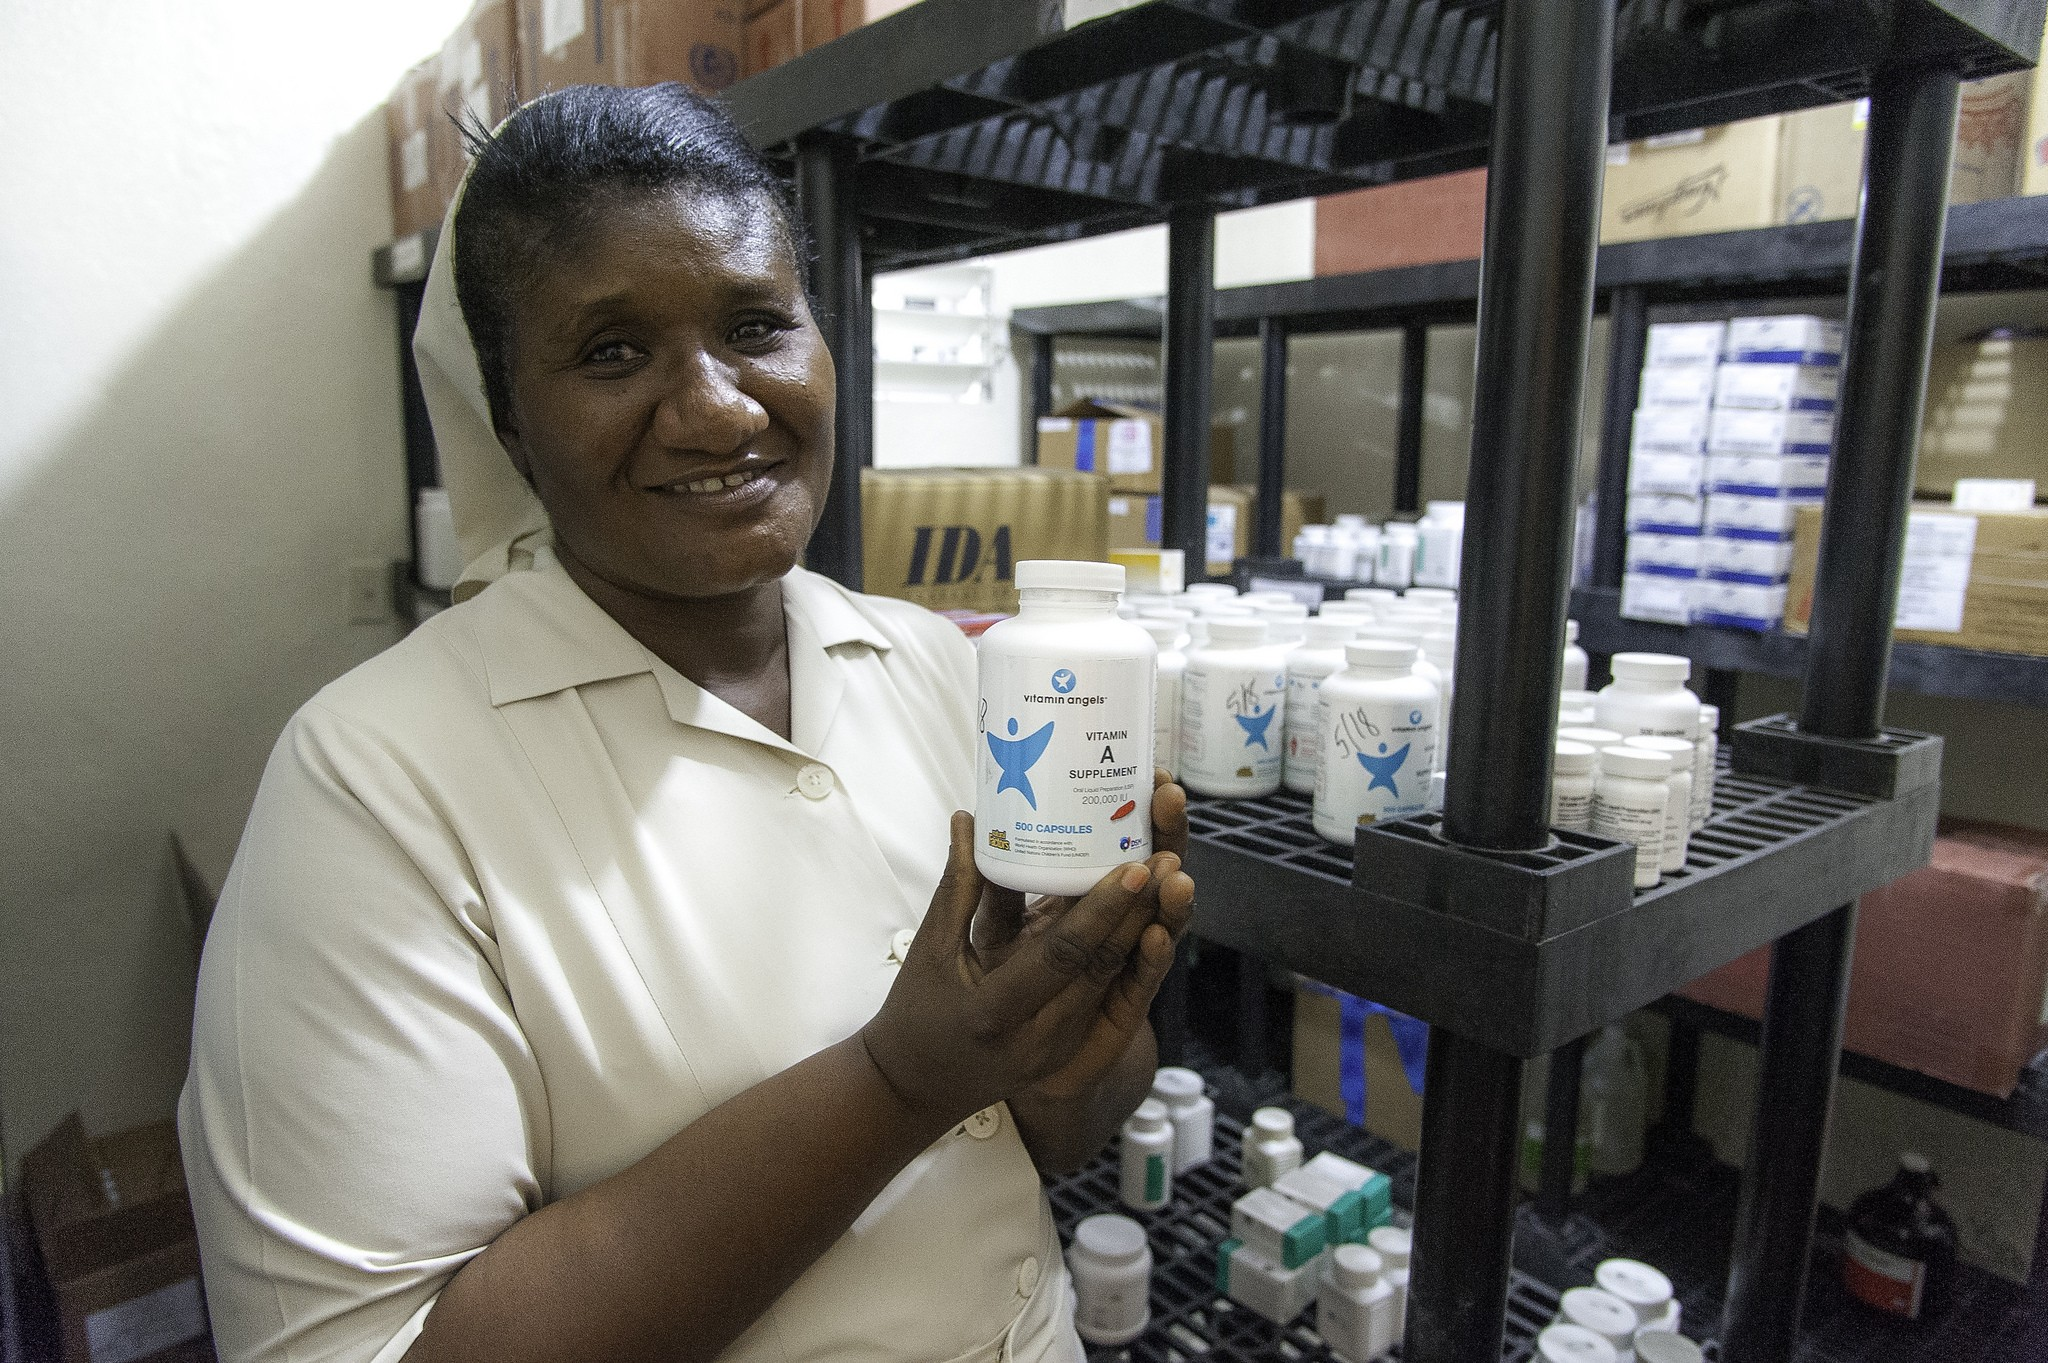 Sister Mathilde shows pride in the medicines they have available